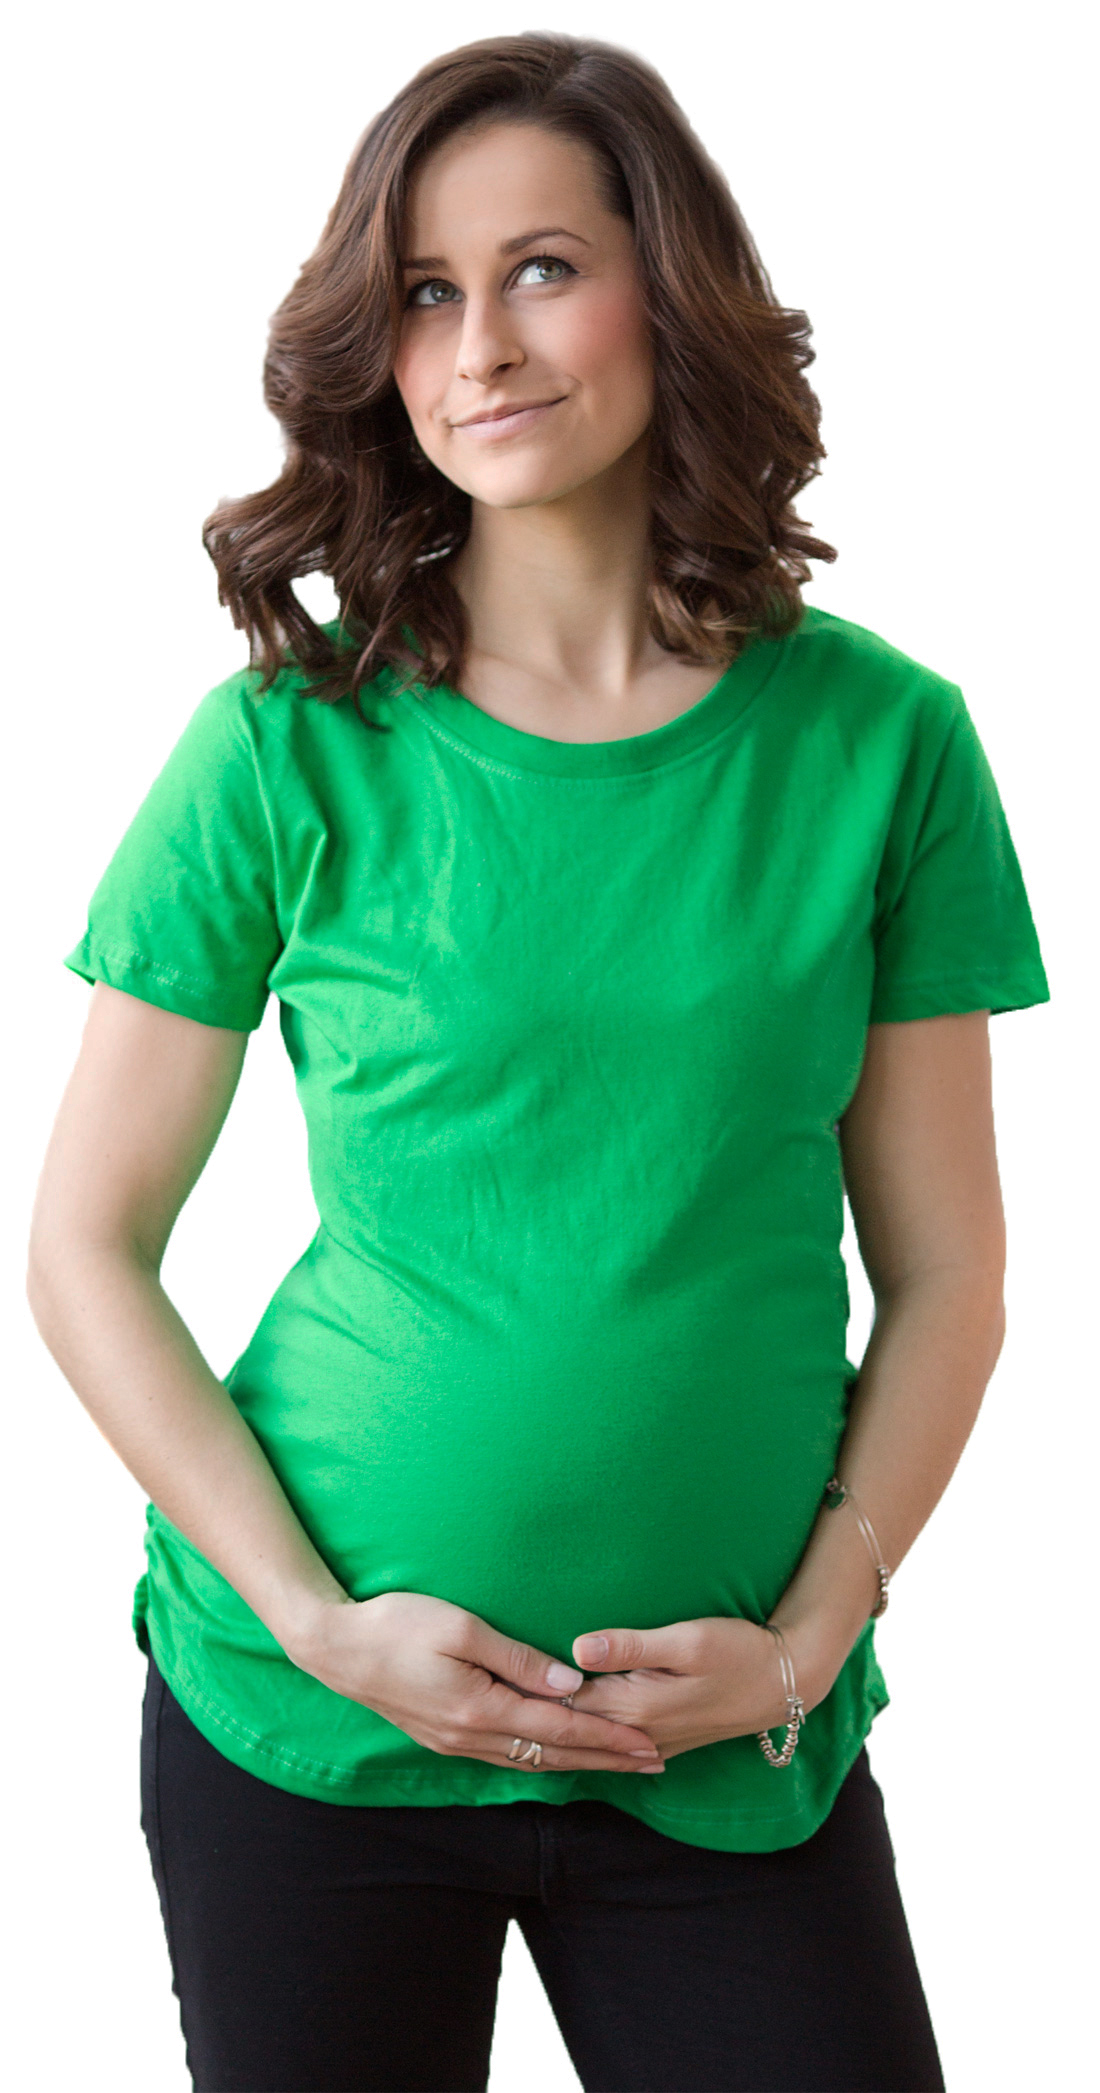 Shop eBay for great deals on Maternity T-Shirts. You'll find new or used products in Maternity T-Shirts on eBay. Free shipping on selected items. Skip to main content. eBay: Shop by category. Cheap Maternity Shirts Blank Pregnancy Shirts Plain I'm Pregnant T shirt. $ 7 sold.